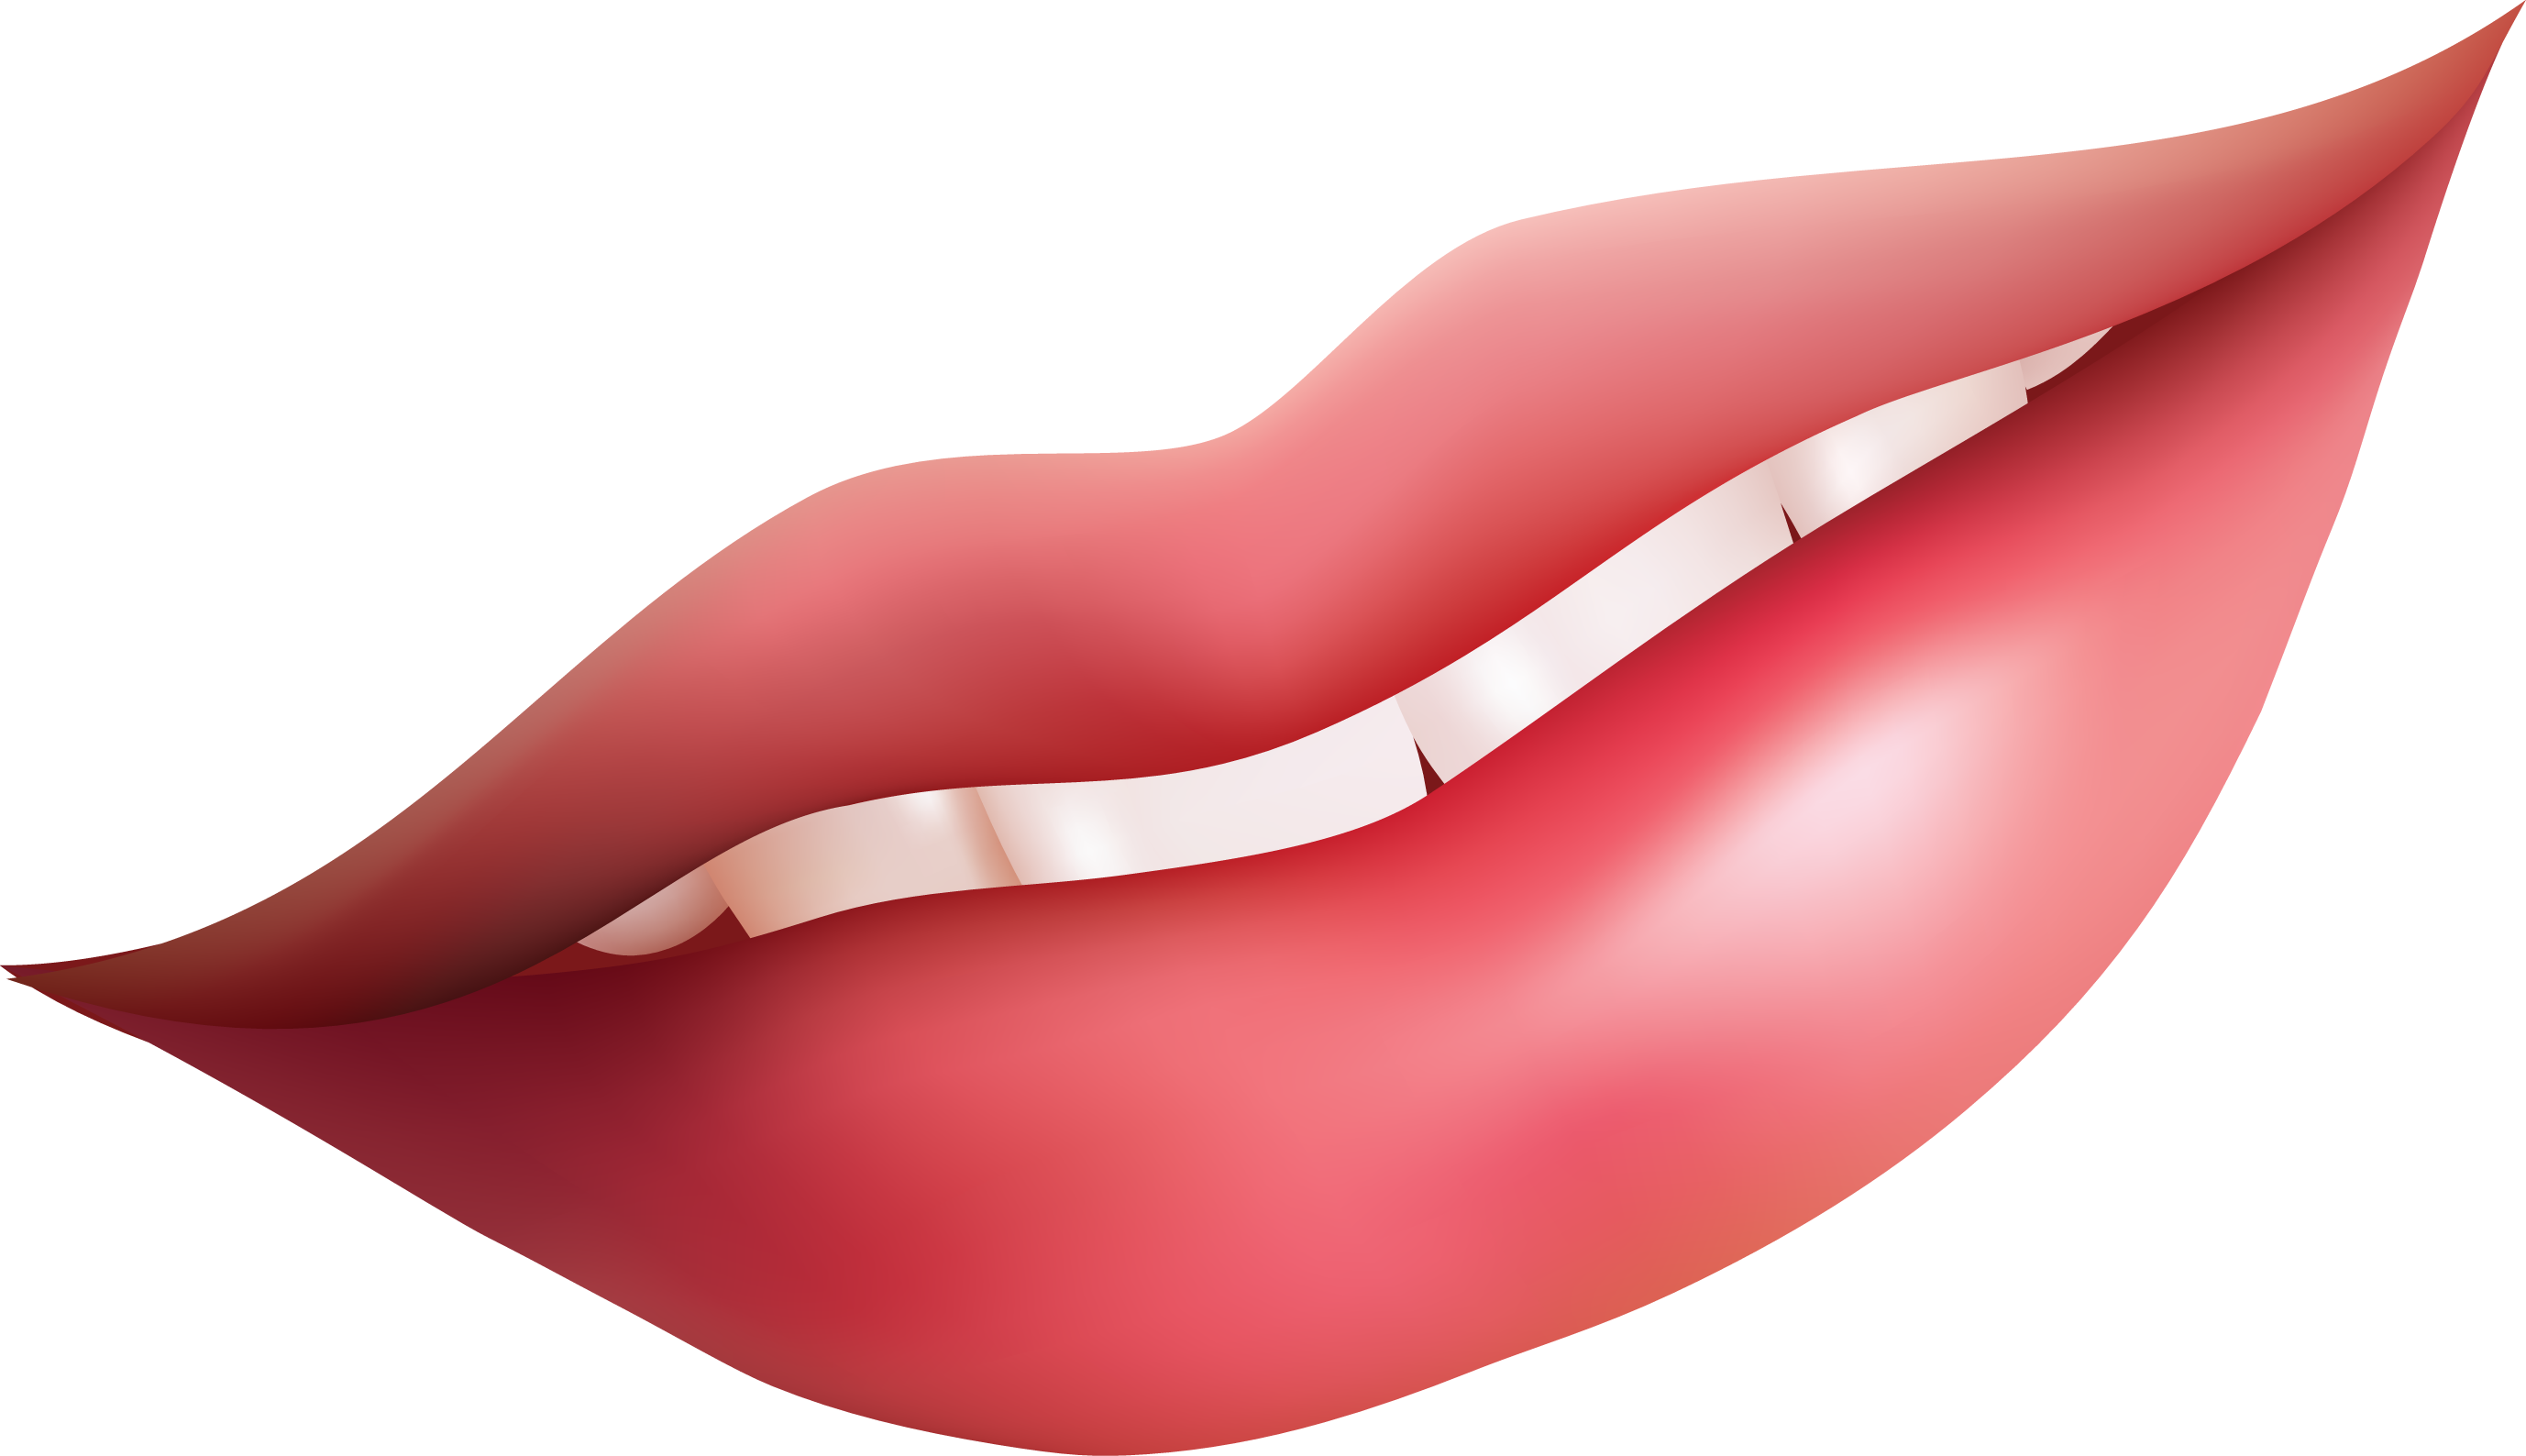 Zipped Lips PNG - 40802